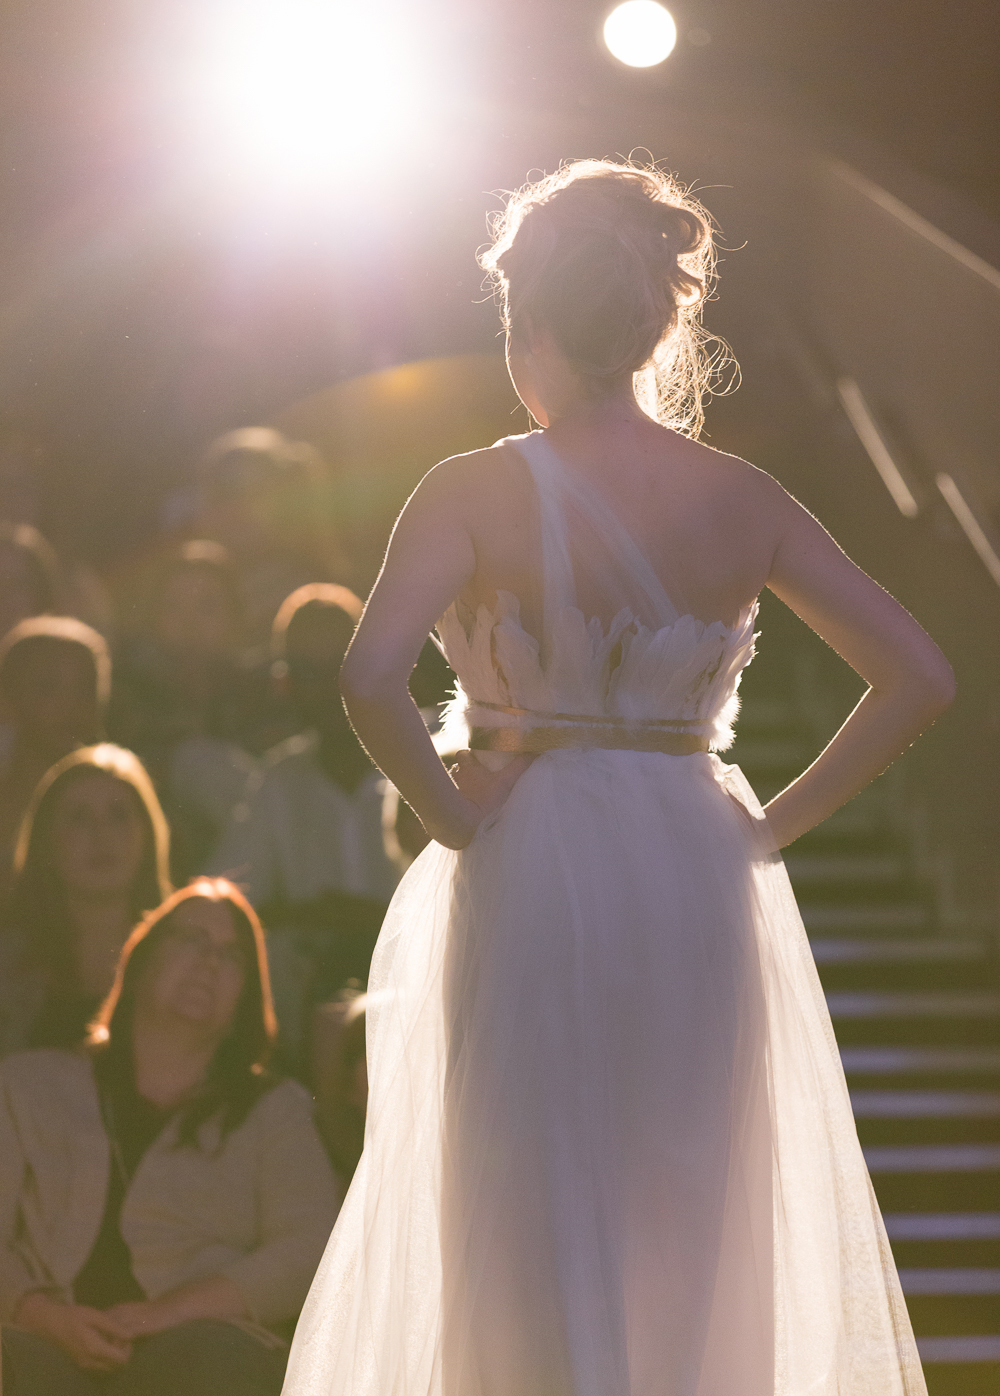 Model at fashion show wears flowing white dress